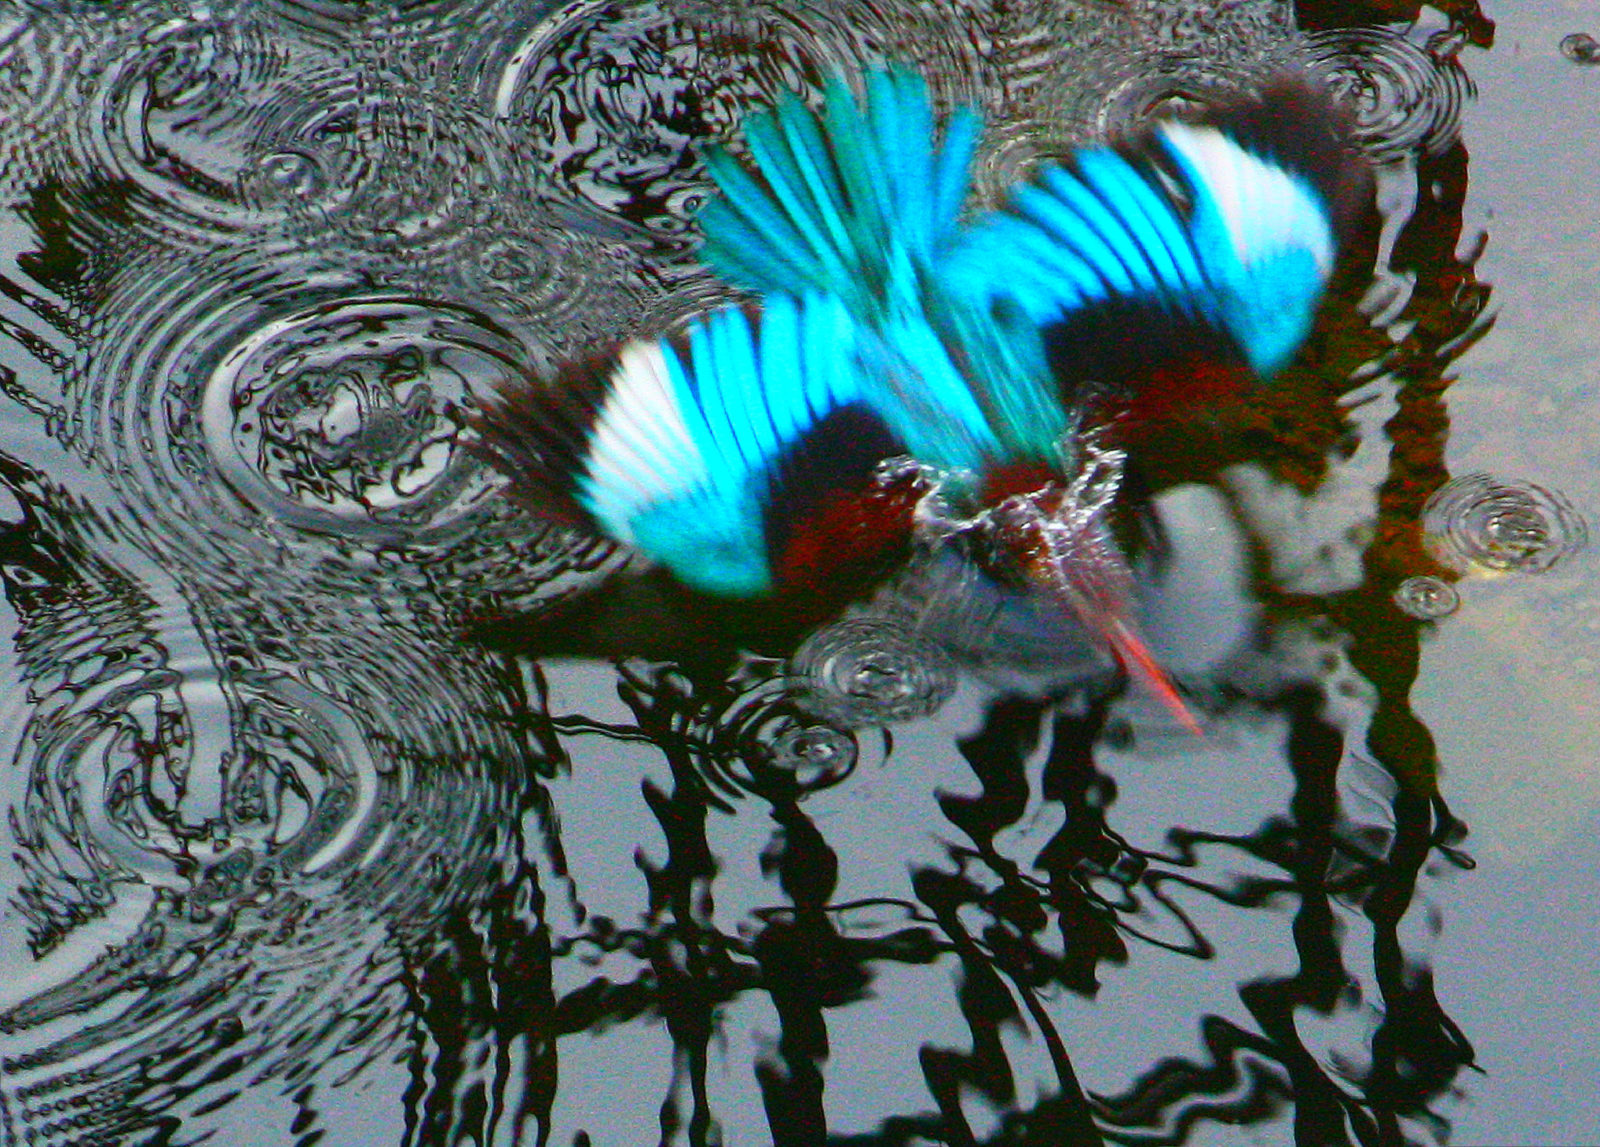 THE KINGFISHER DIVING IN TO WATER